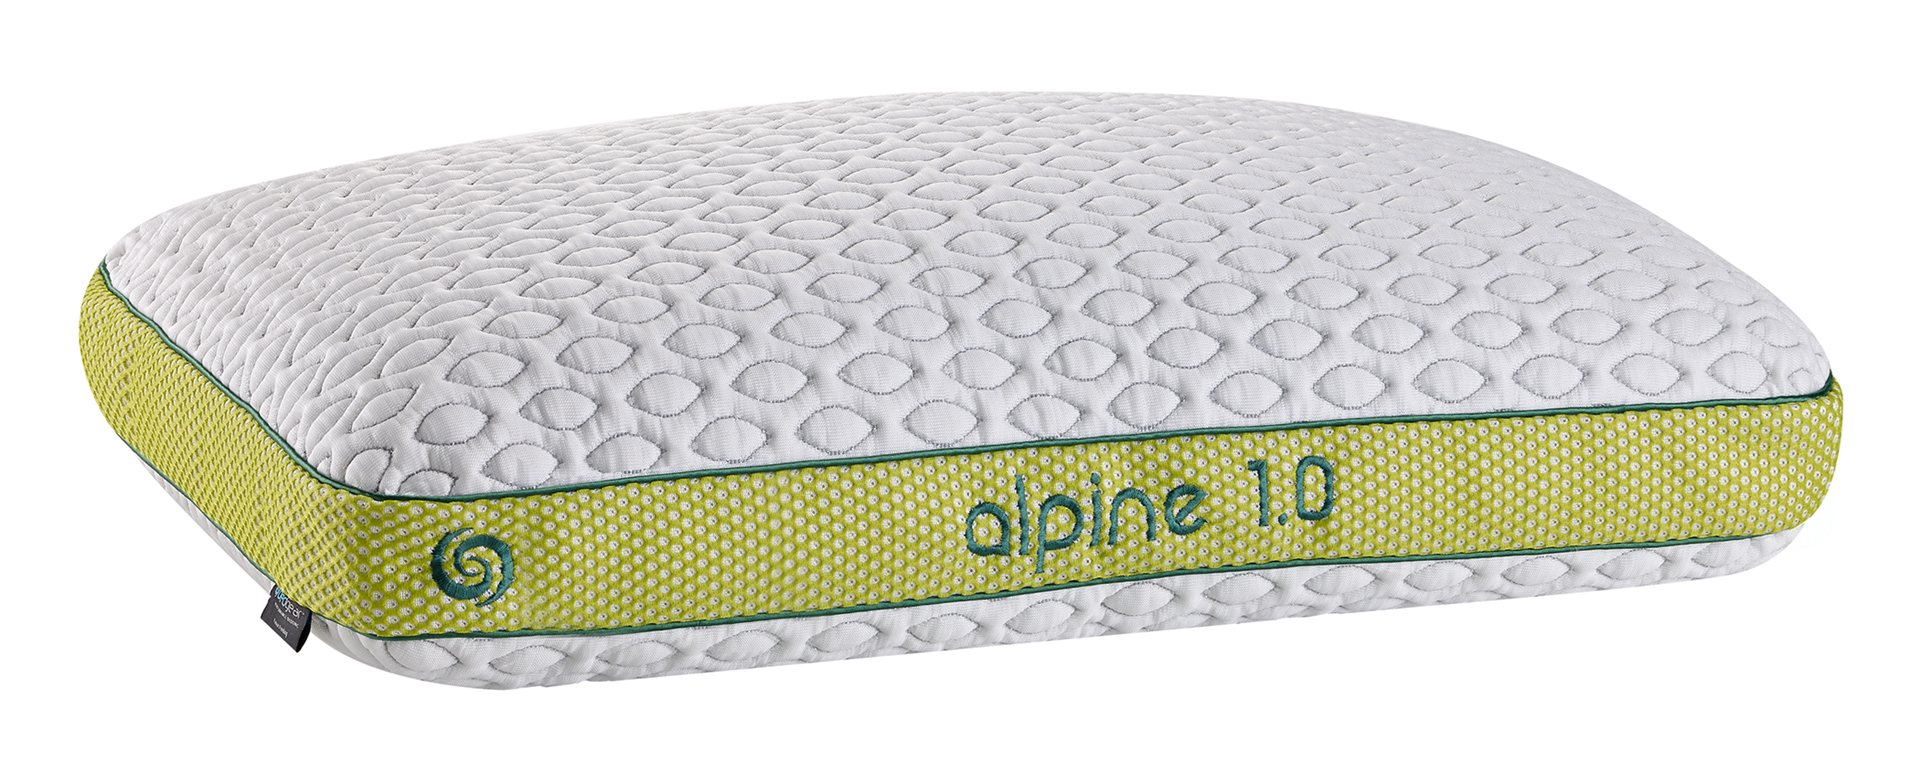 Picture of ALPINE 1.0 PILLOW